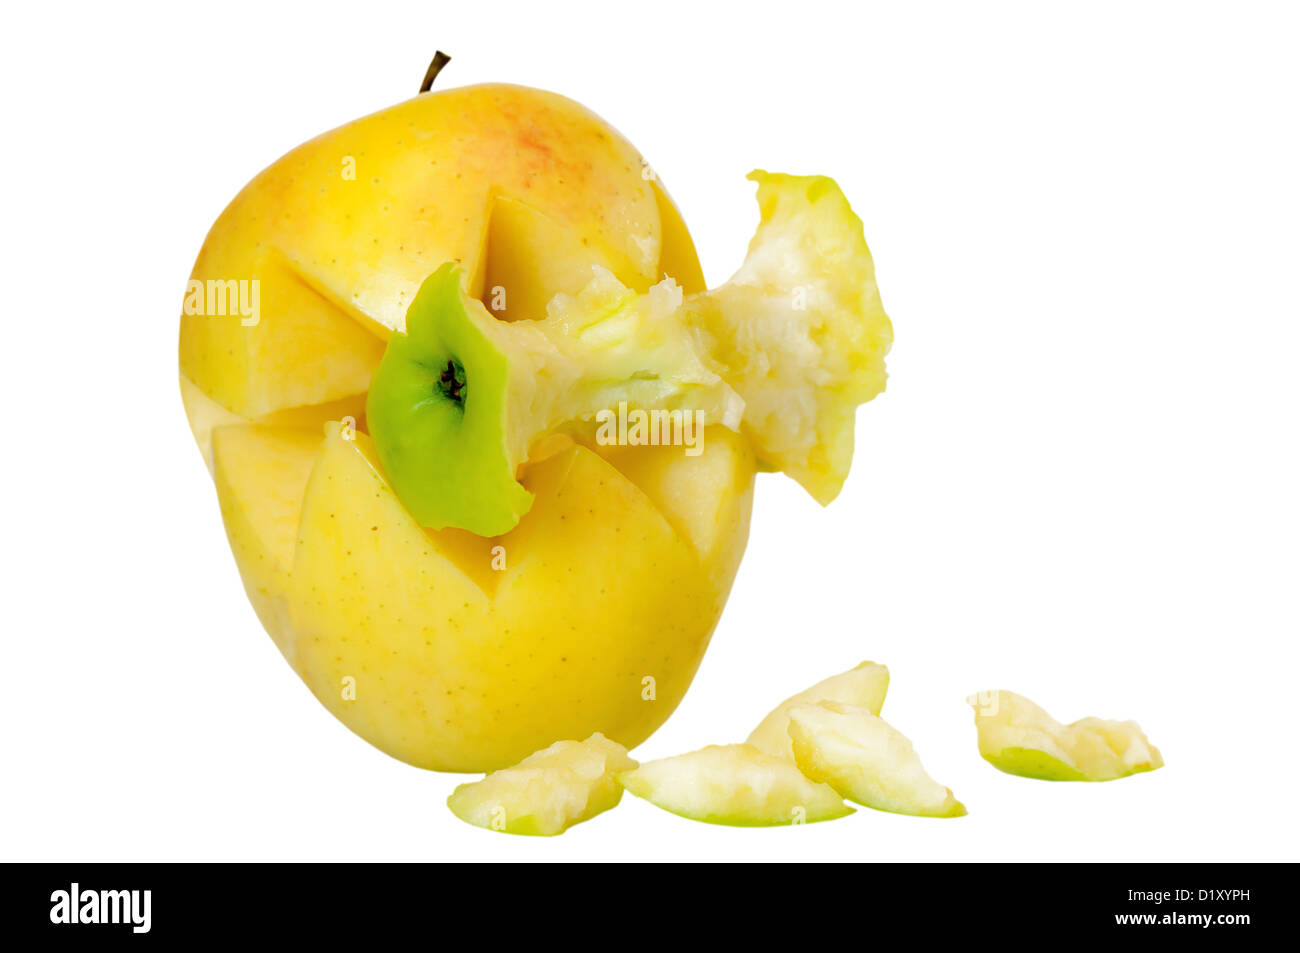 Yellow apple ingest green apple, acquisition concept - Stock Image